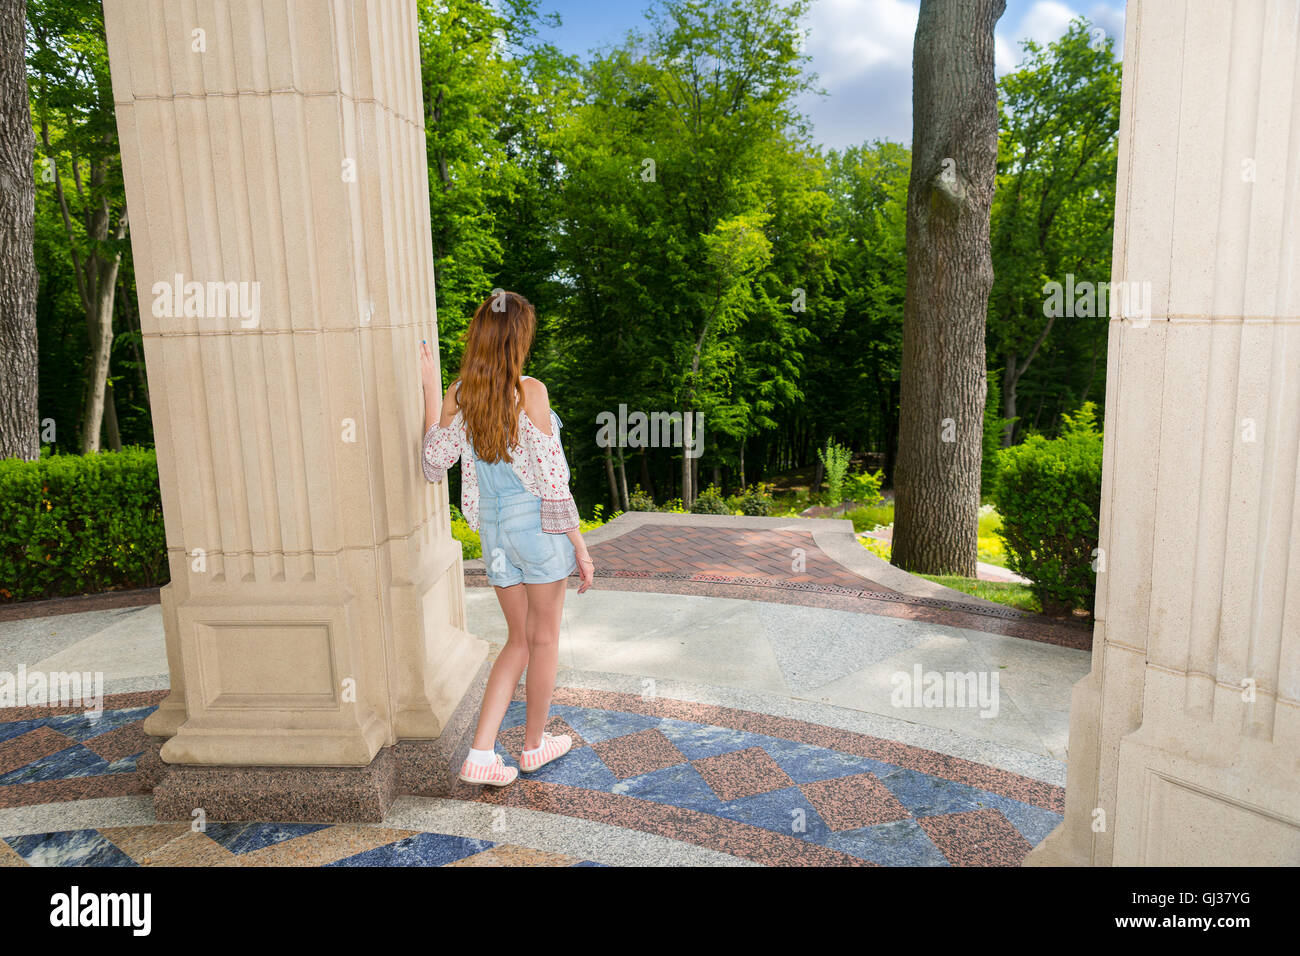 Side view on contemplative young female standing near stone wall outside facing trees in park or yard - Stock Image